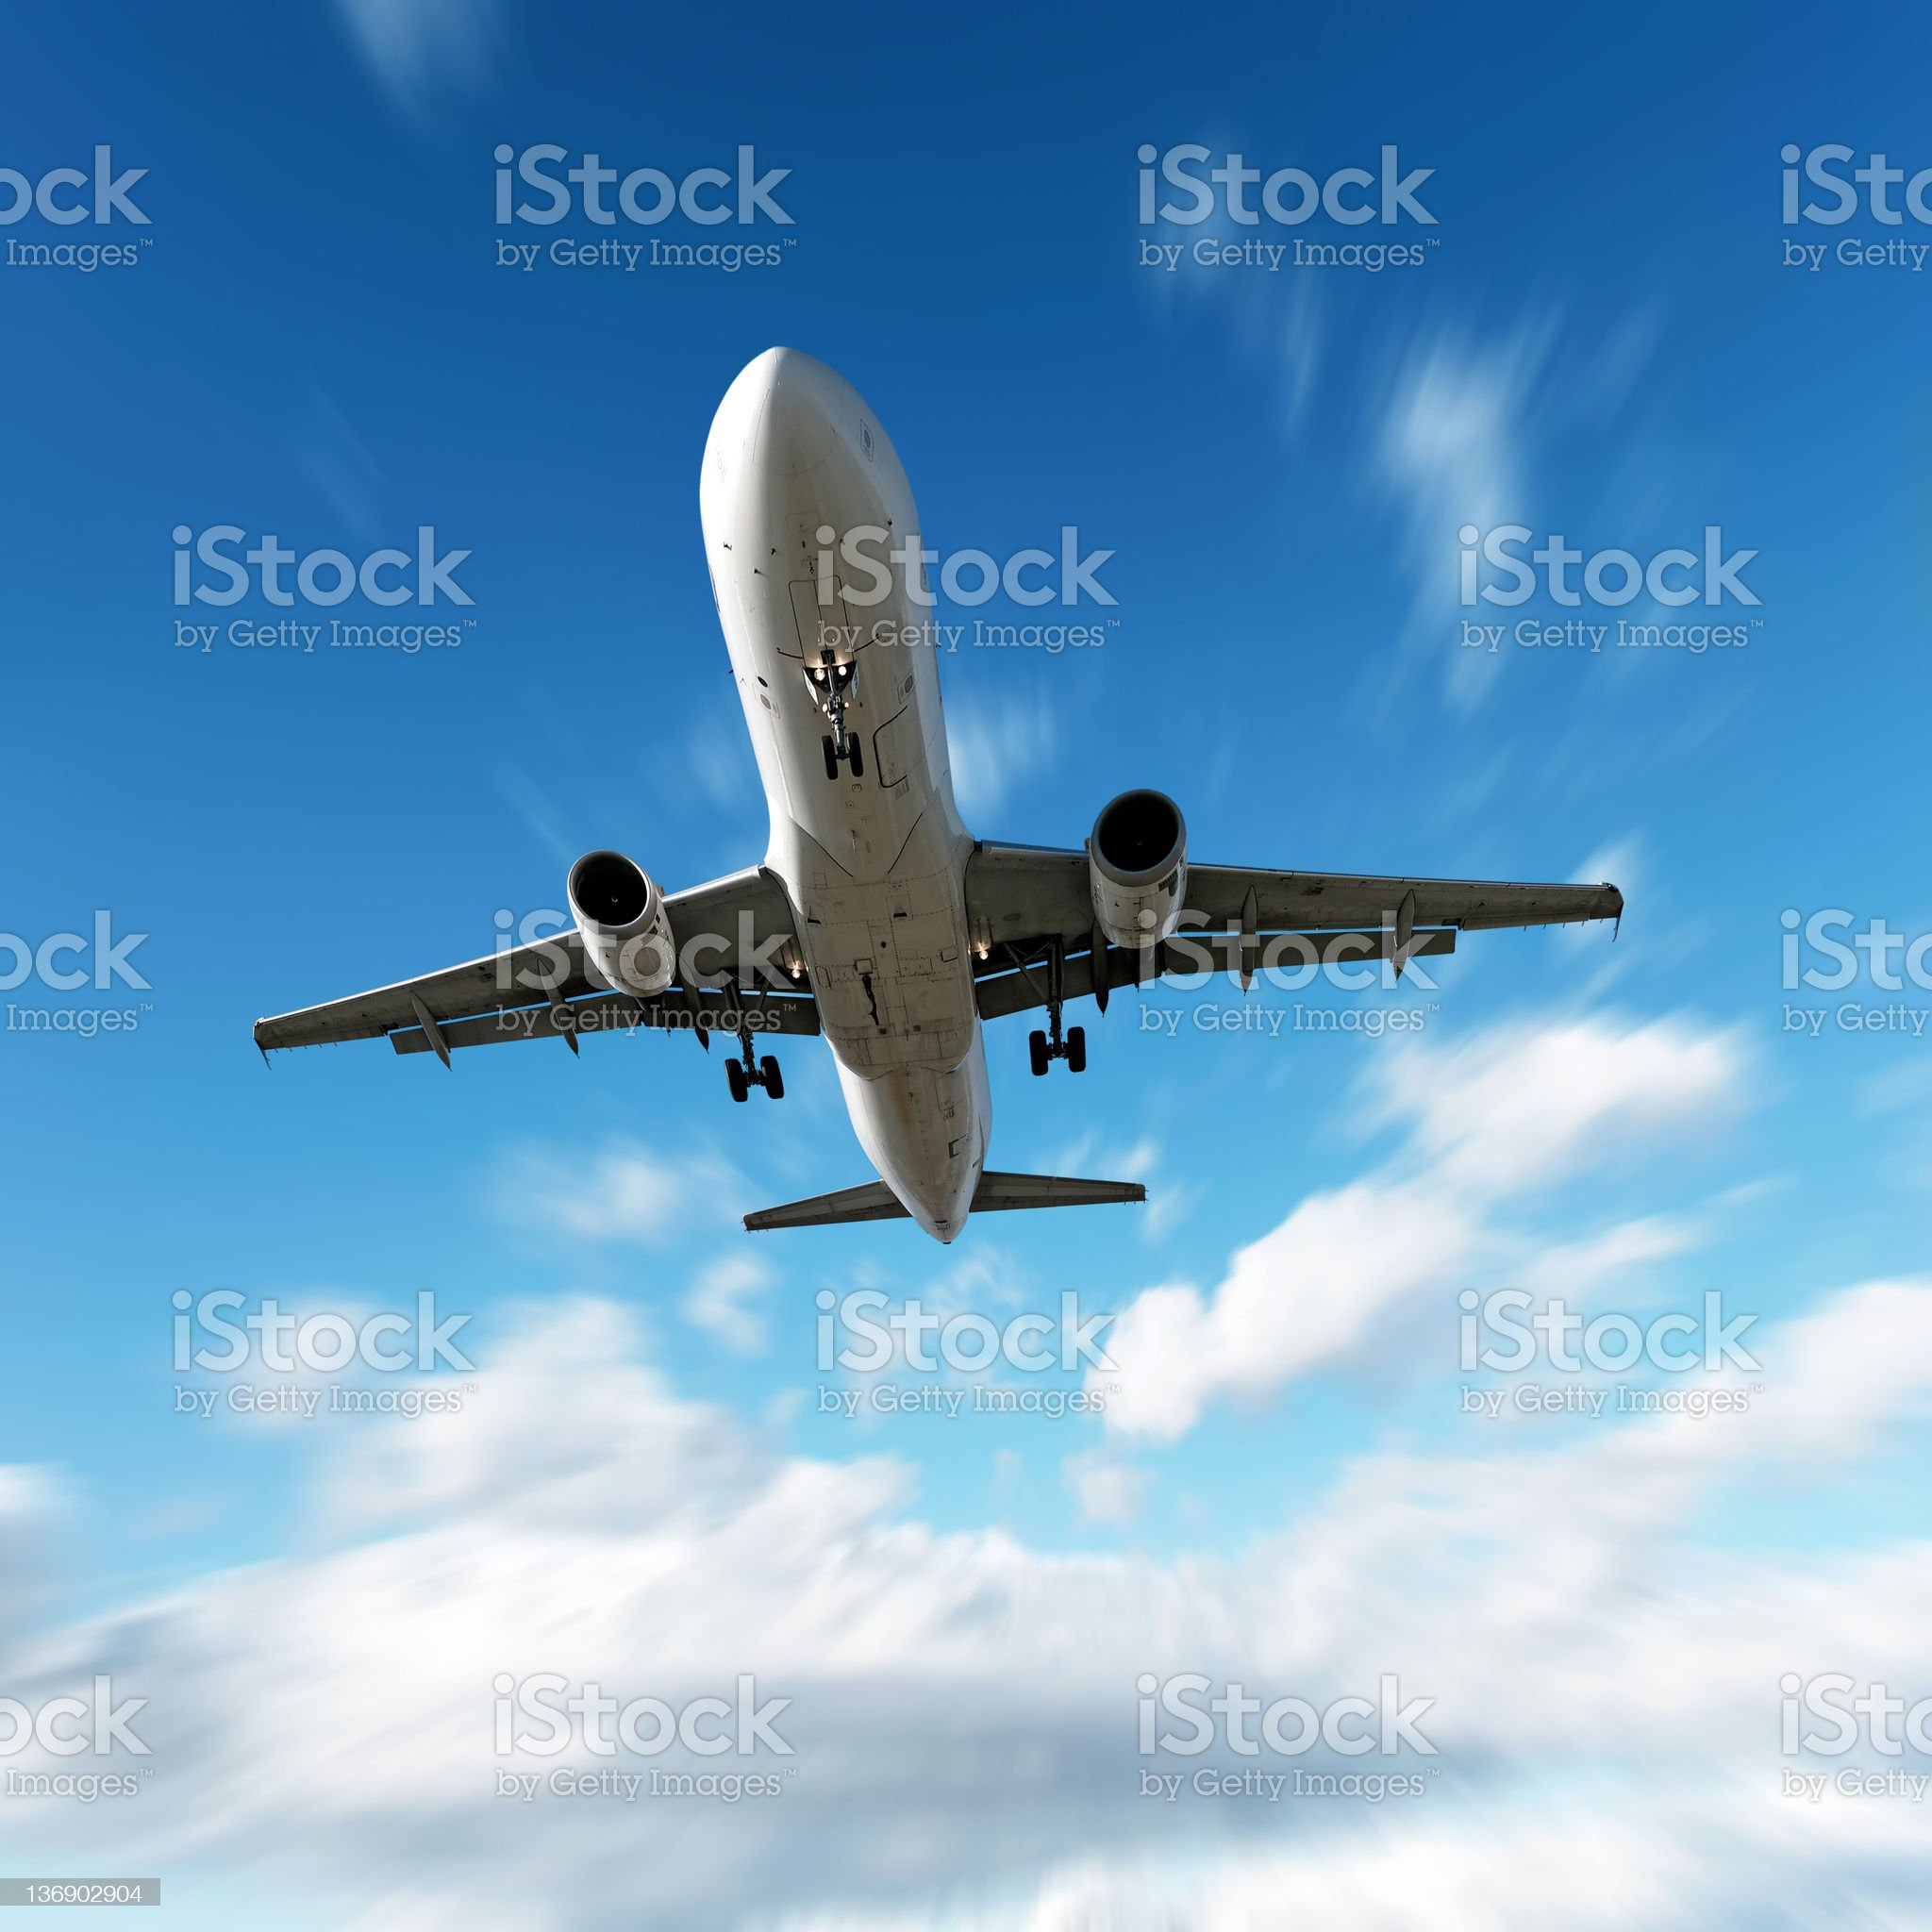 XL jet airplane landing in motion blur sky royalty-free stock photo